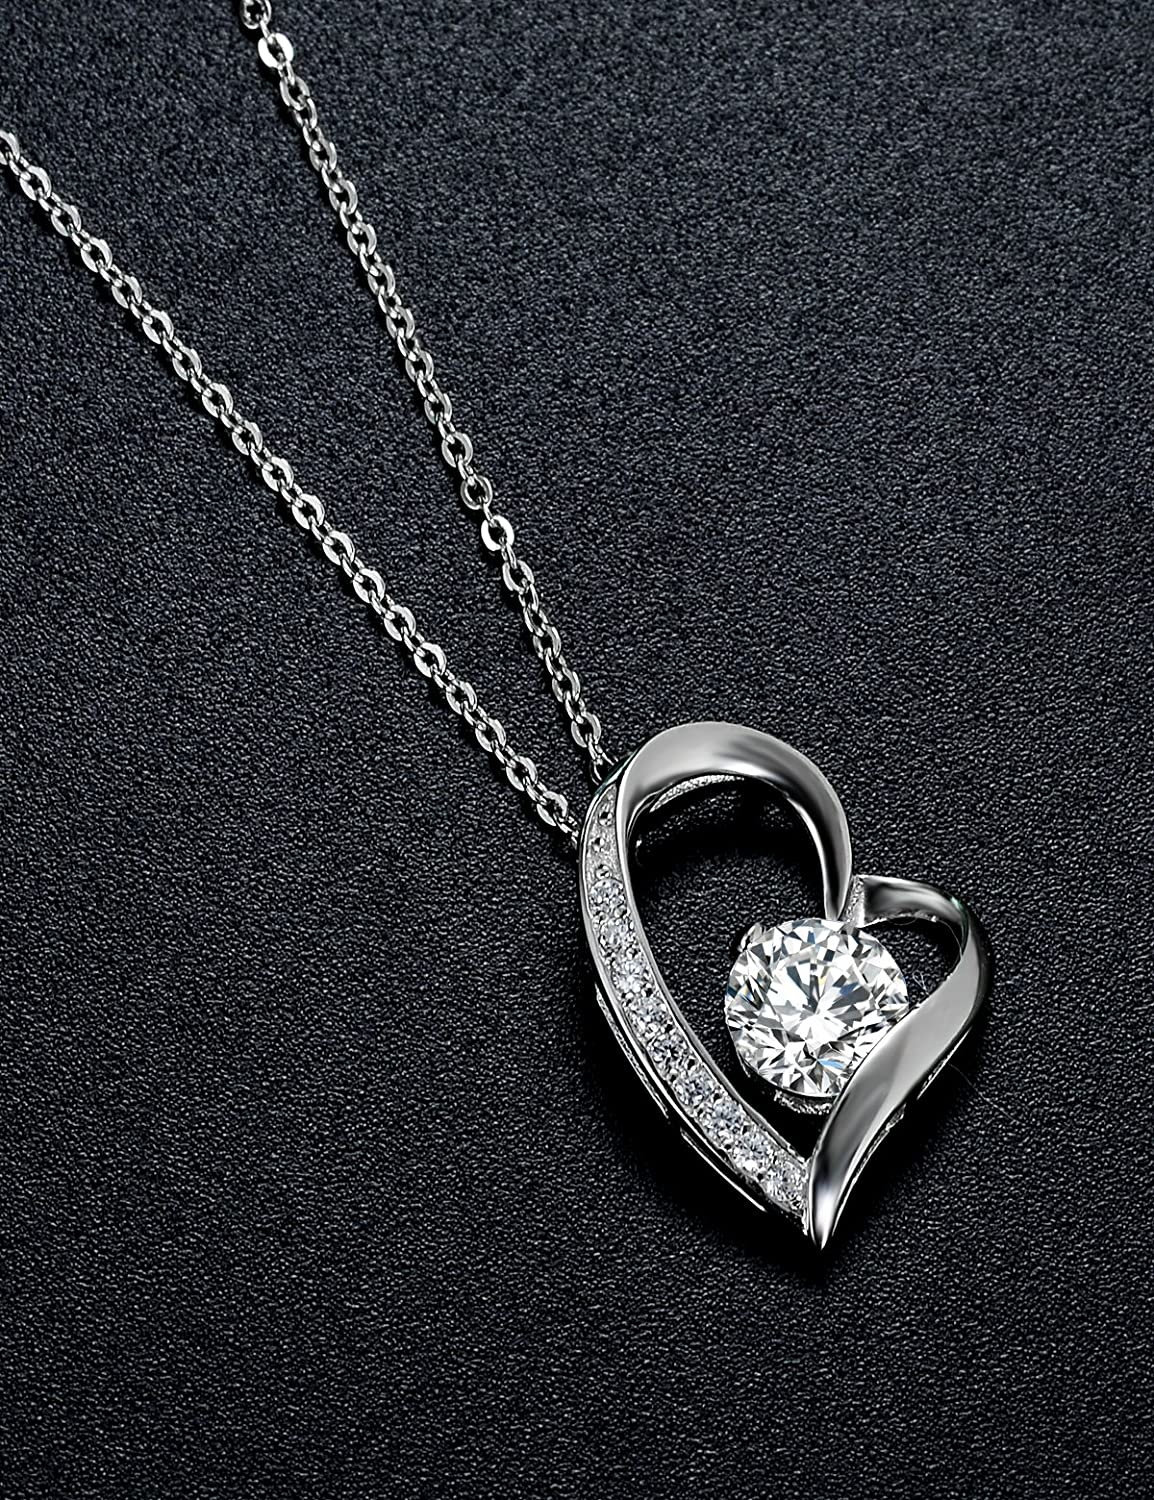 I love U Mom S925 Sterling Silver Heart Pendant Necklace 14K White Gold Plated Jewelry Gifts for Mom